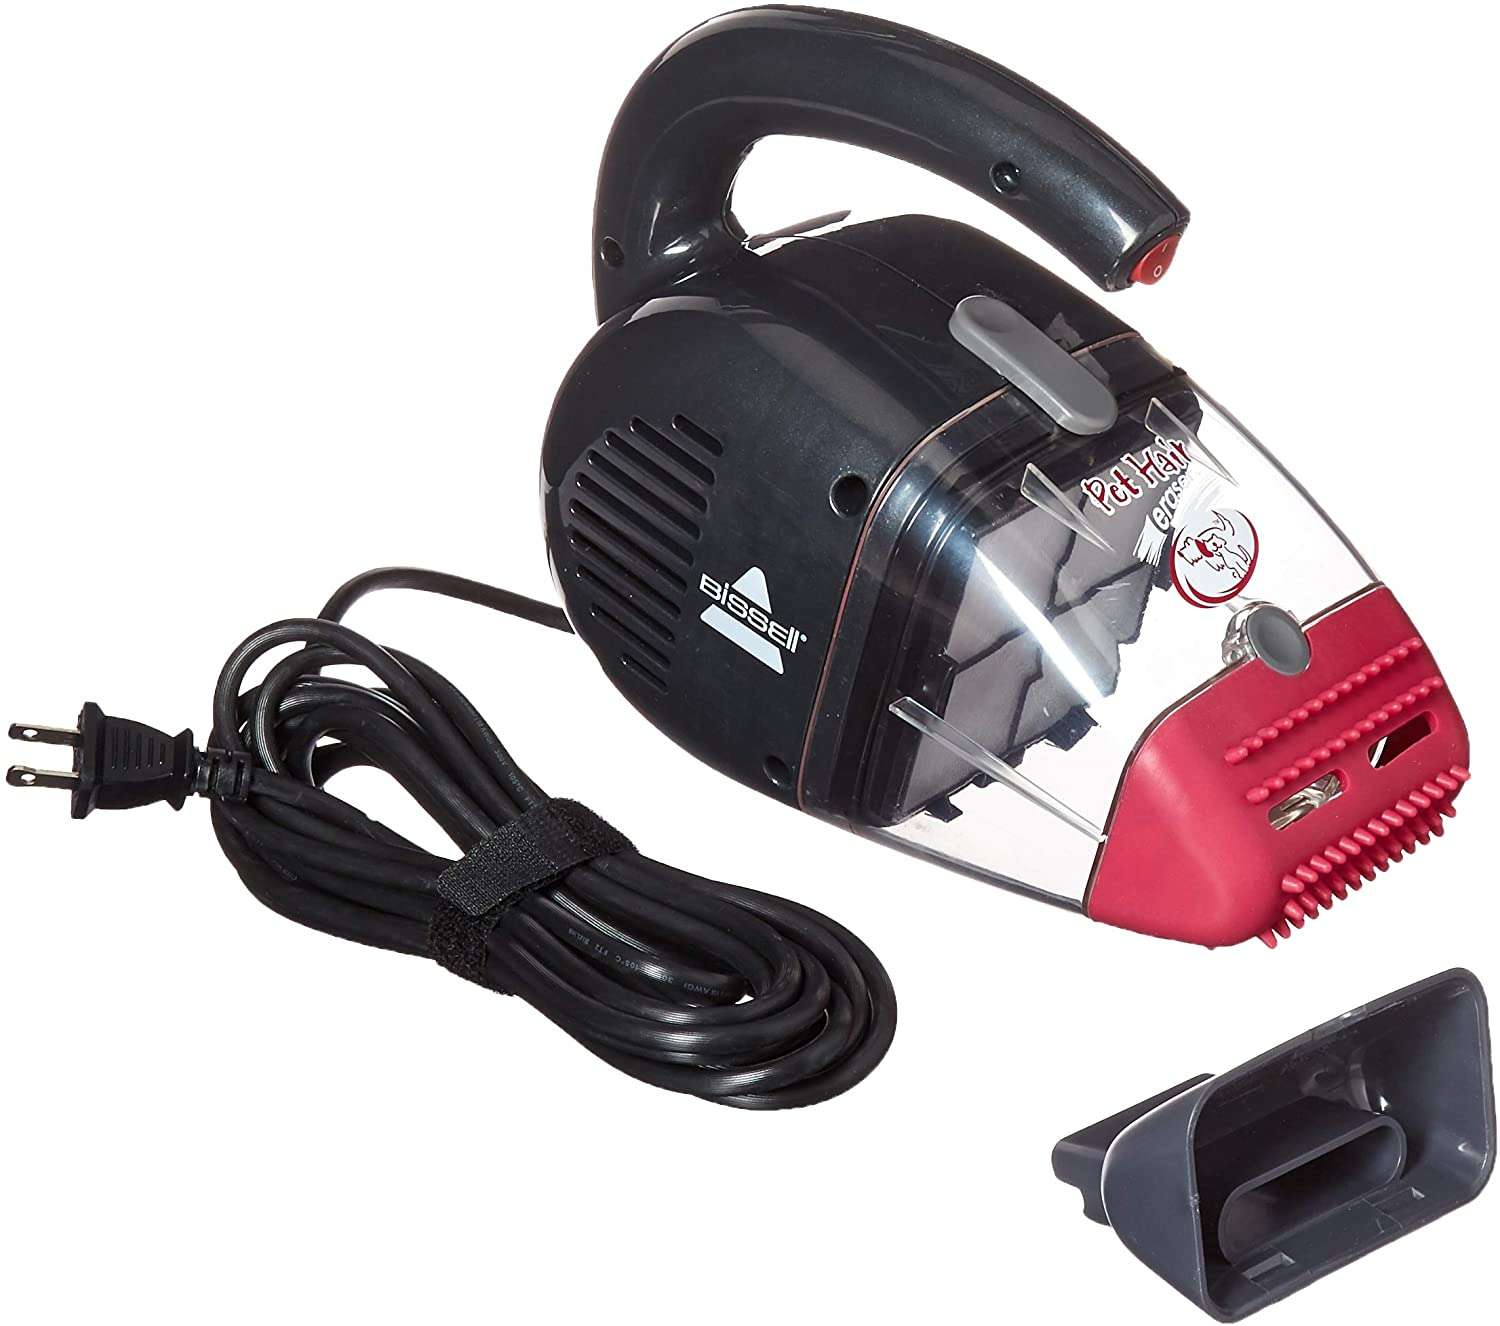 THE BISSEL 33A1 VACUUM